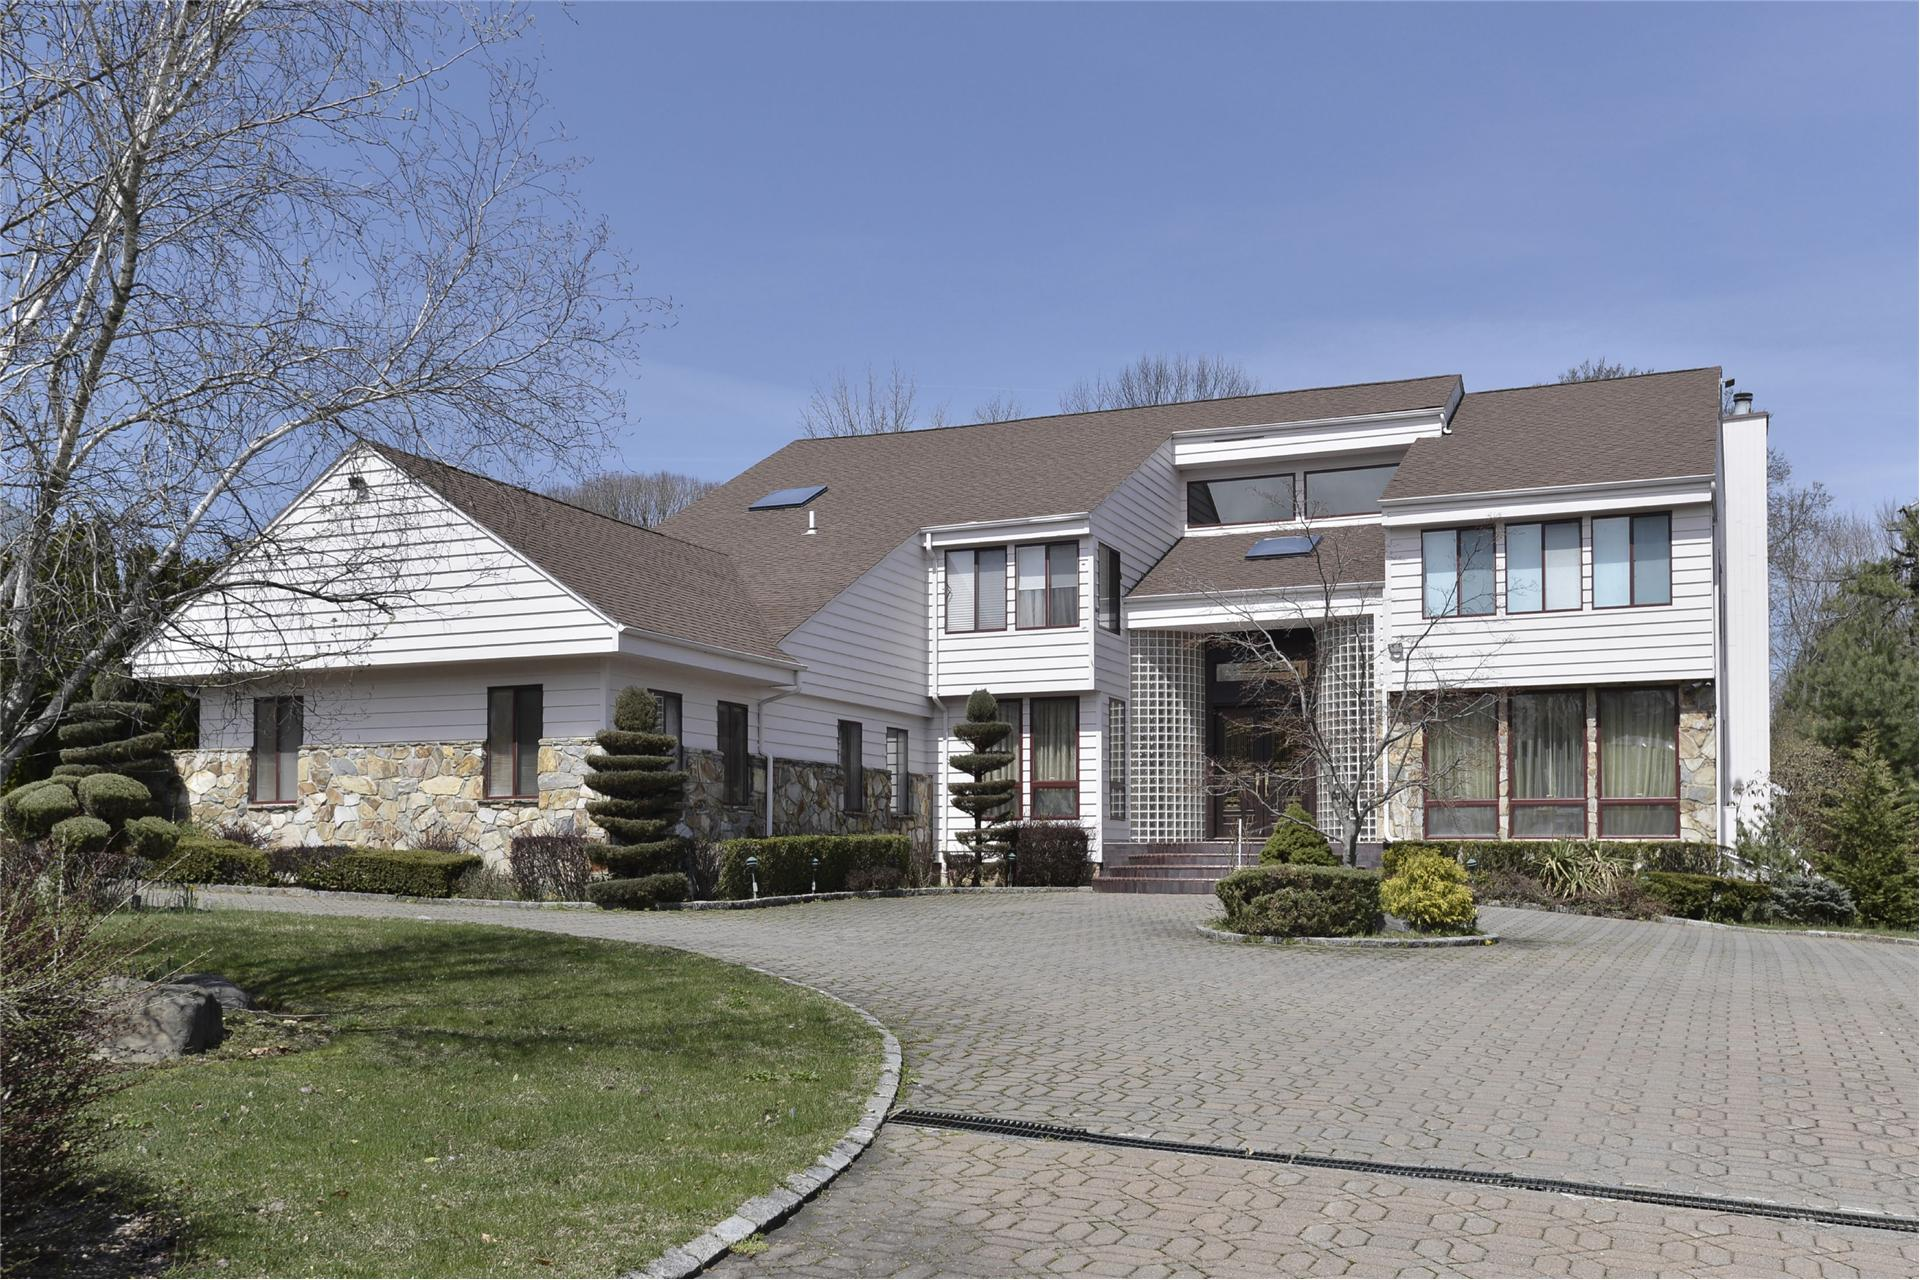 Single Family for Sale at 4 Heritage Ct Old Brookville, New York 11545 United States